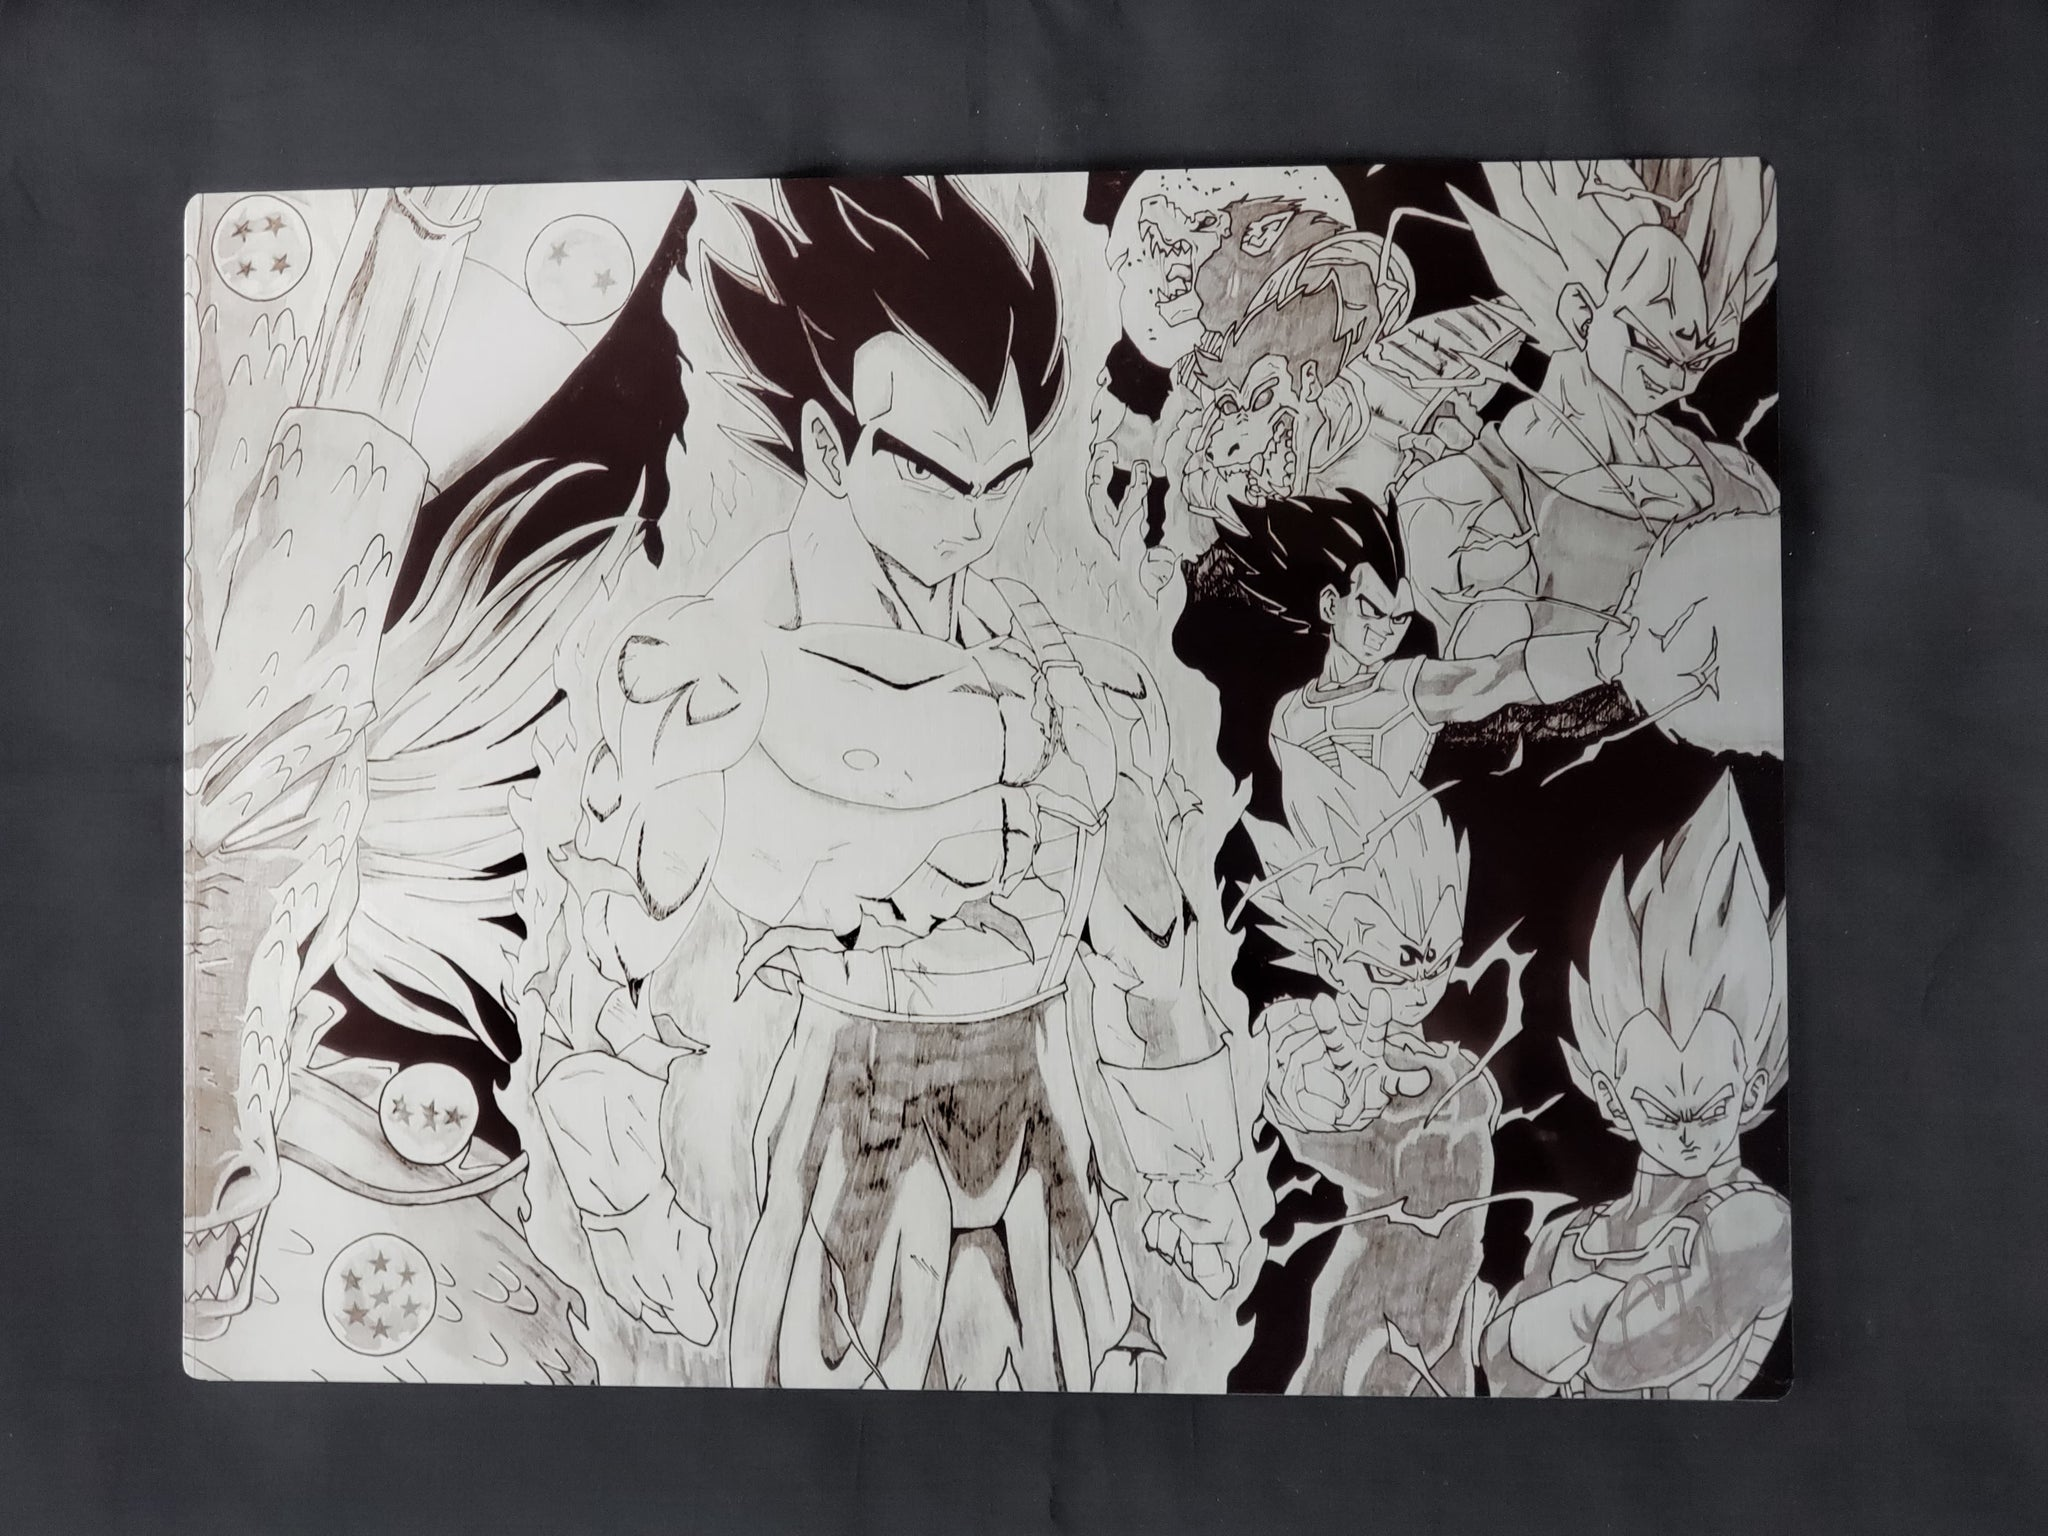 Dragonball's Vegeta collage Metal Art Print